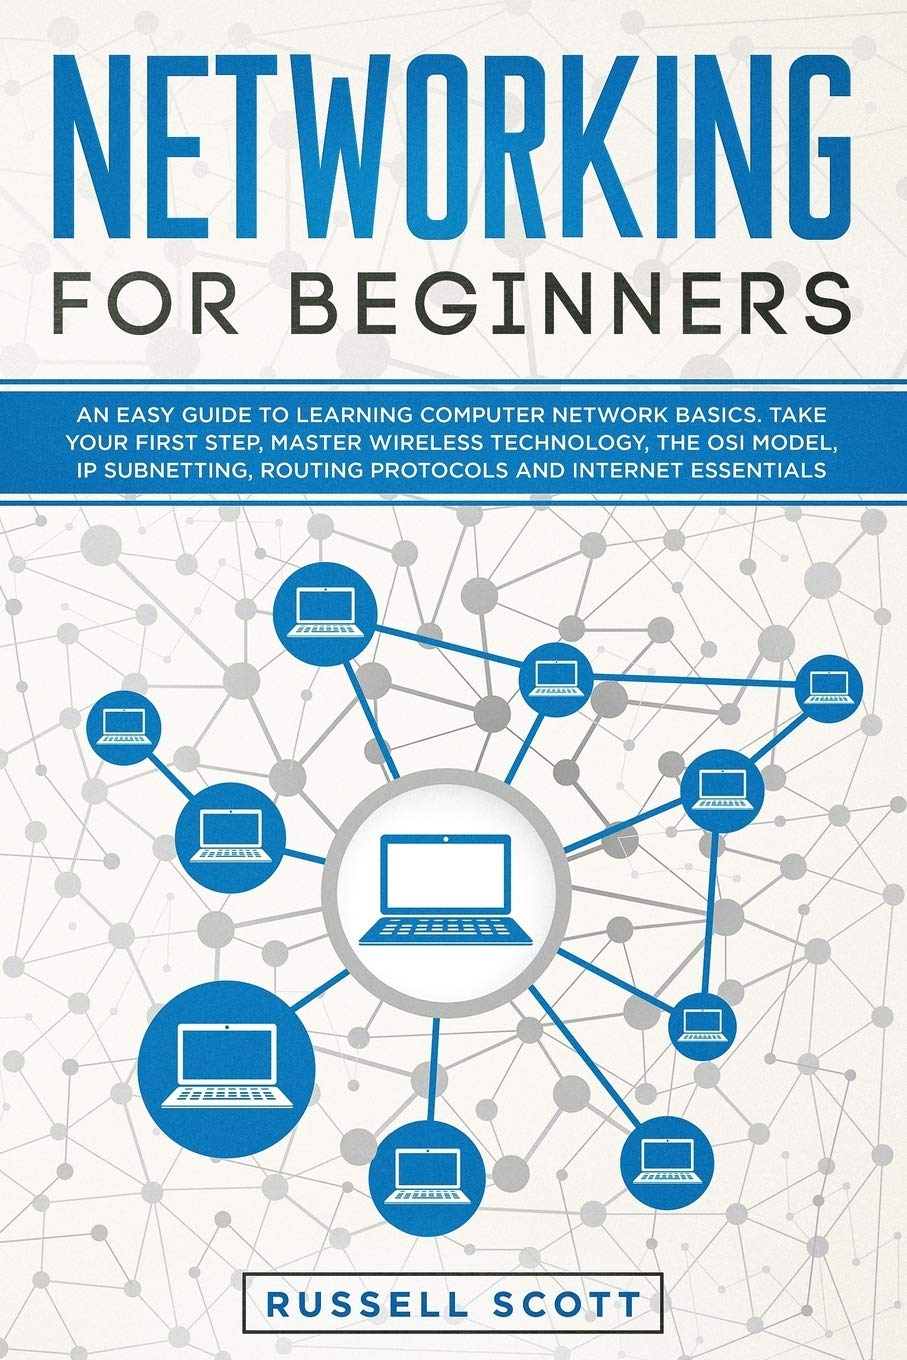 Networking For Beginners An Easy Guide To Learning Computer Network Basics Take Your First Step Master Wireless Technology The Osi Model Ip Subnetting Routing Protocols And Internet Essentials Amazon Co Uk Scott Russell 9781704314105